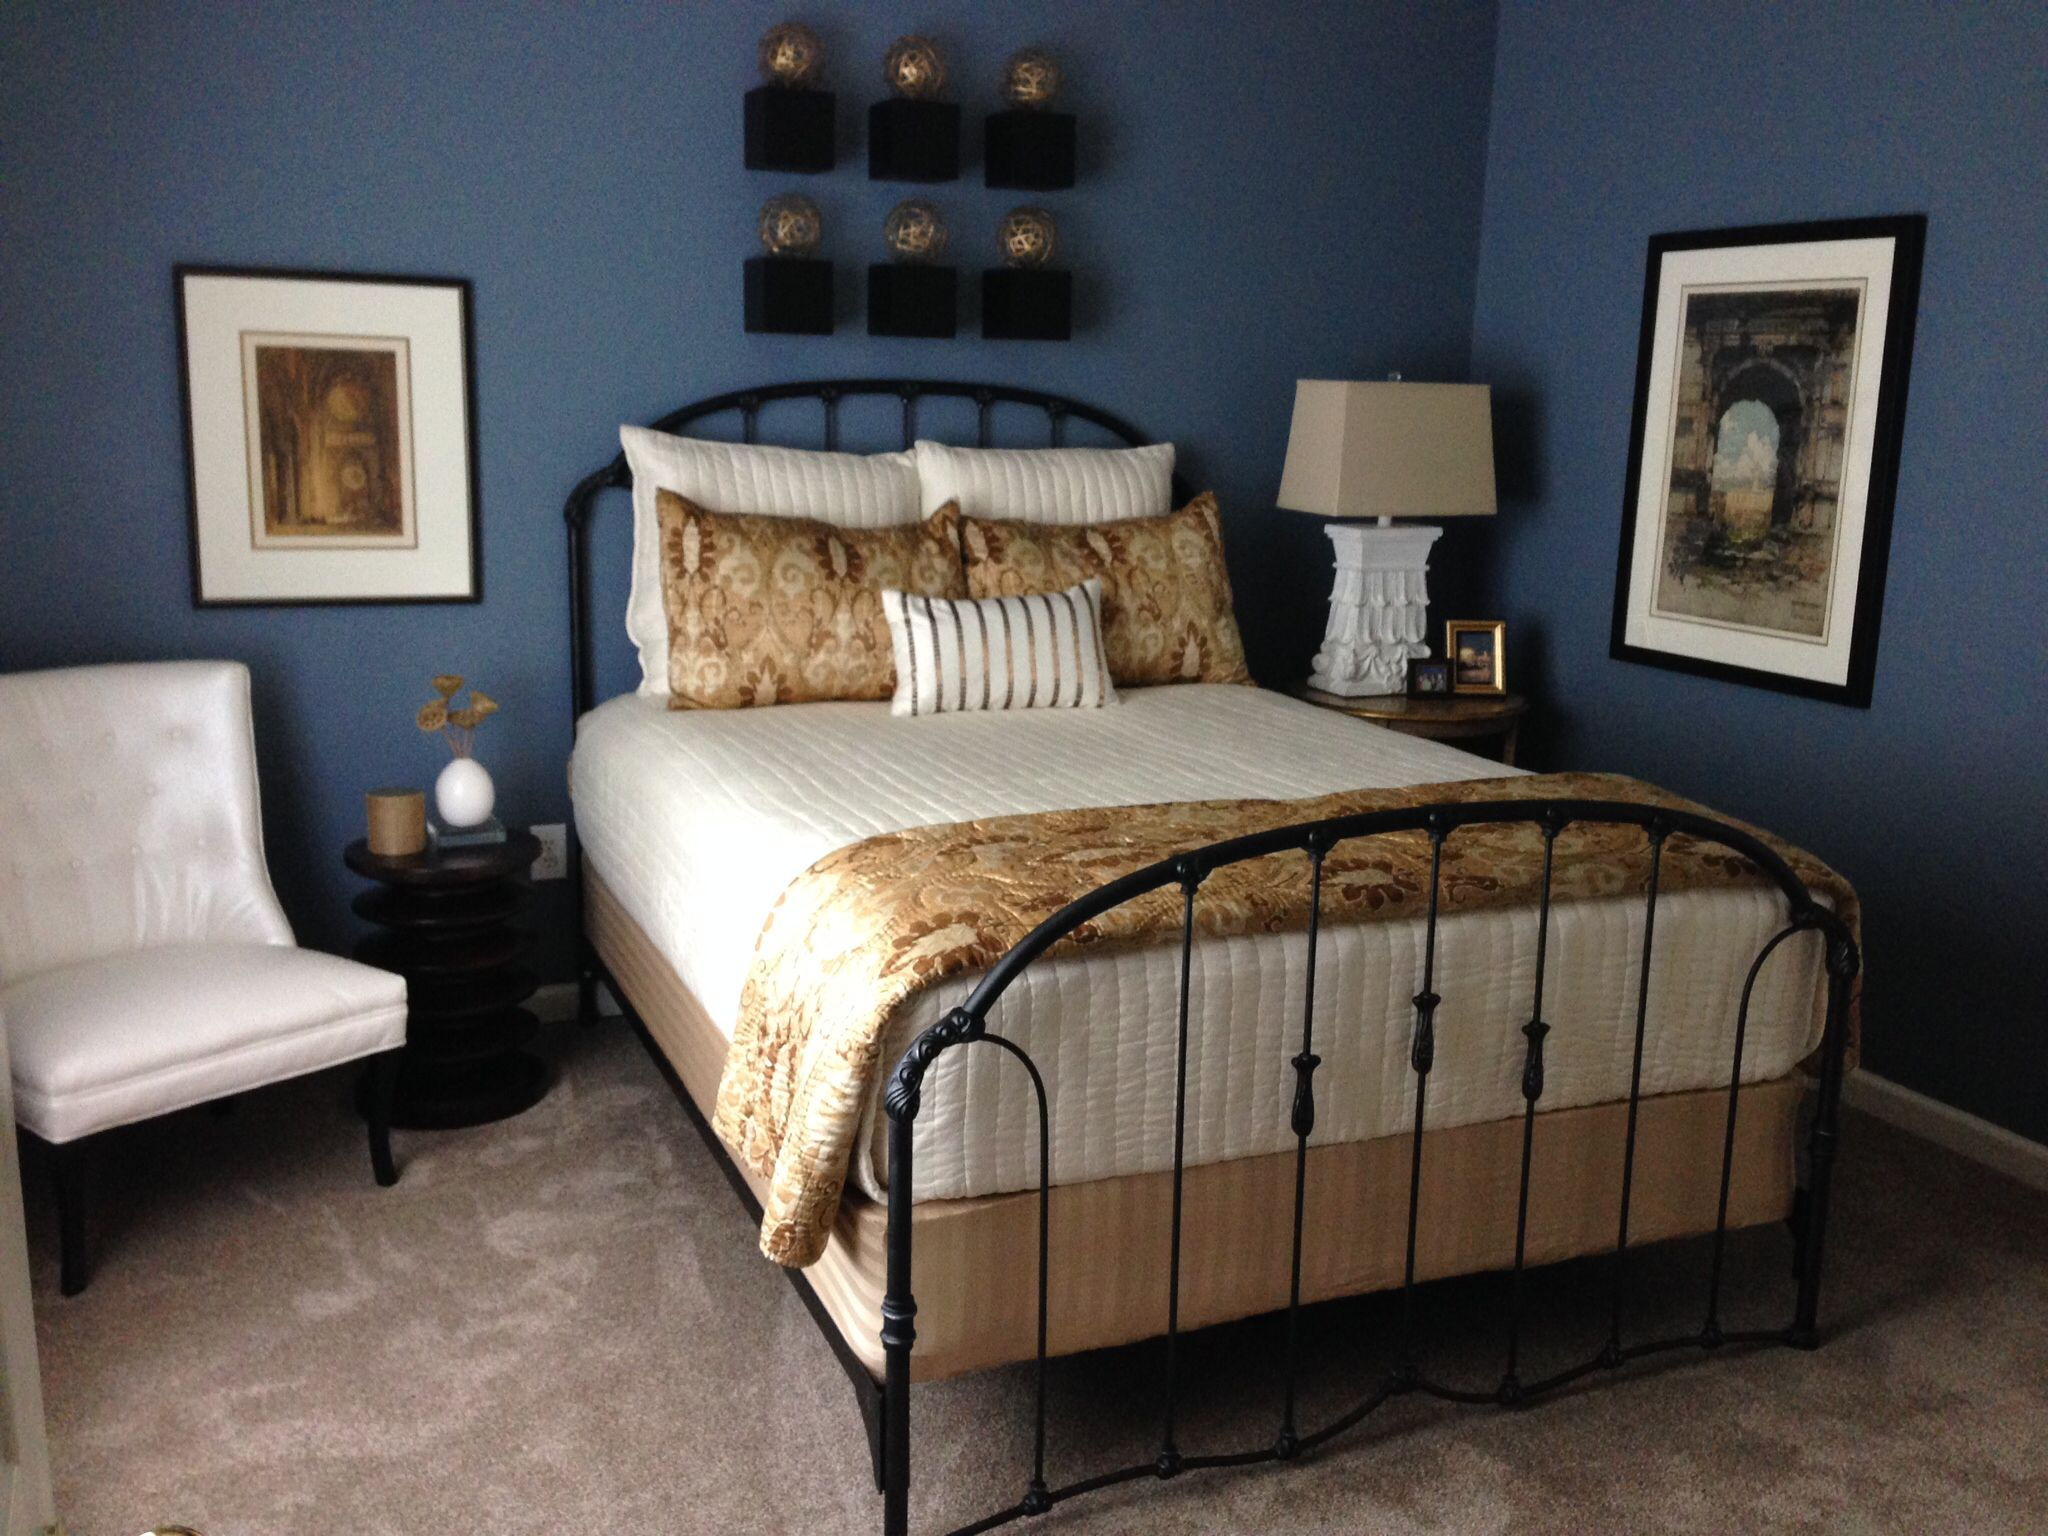 Wall paint color benjamin moore 39 s normandy made this - Best bedroom paint colors benjamin moore ...